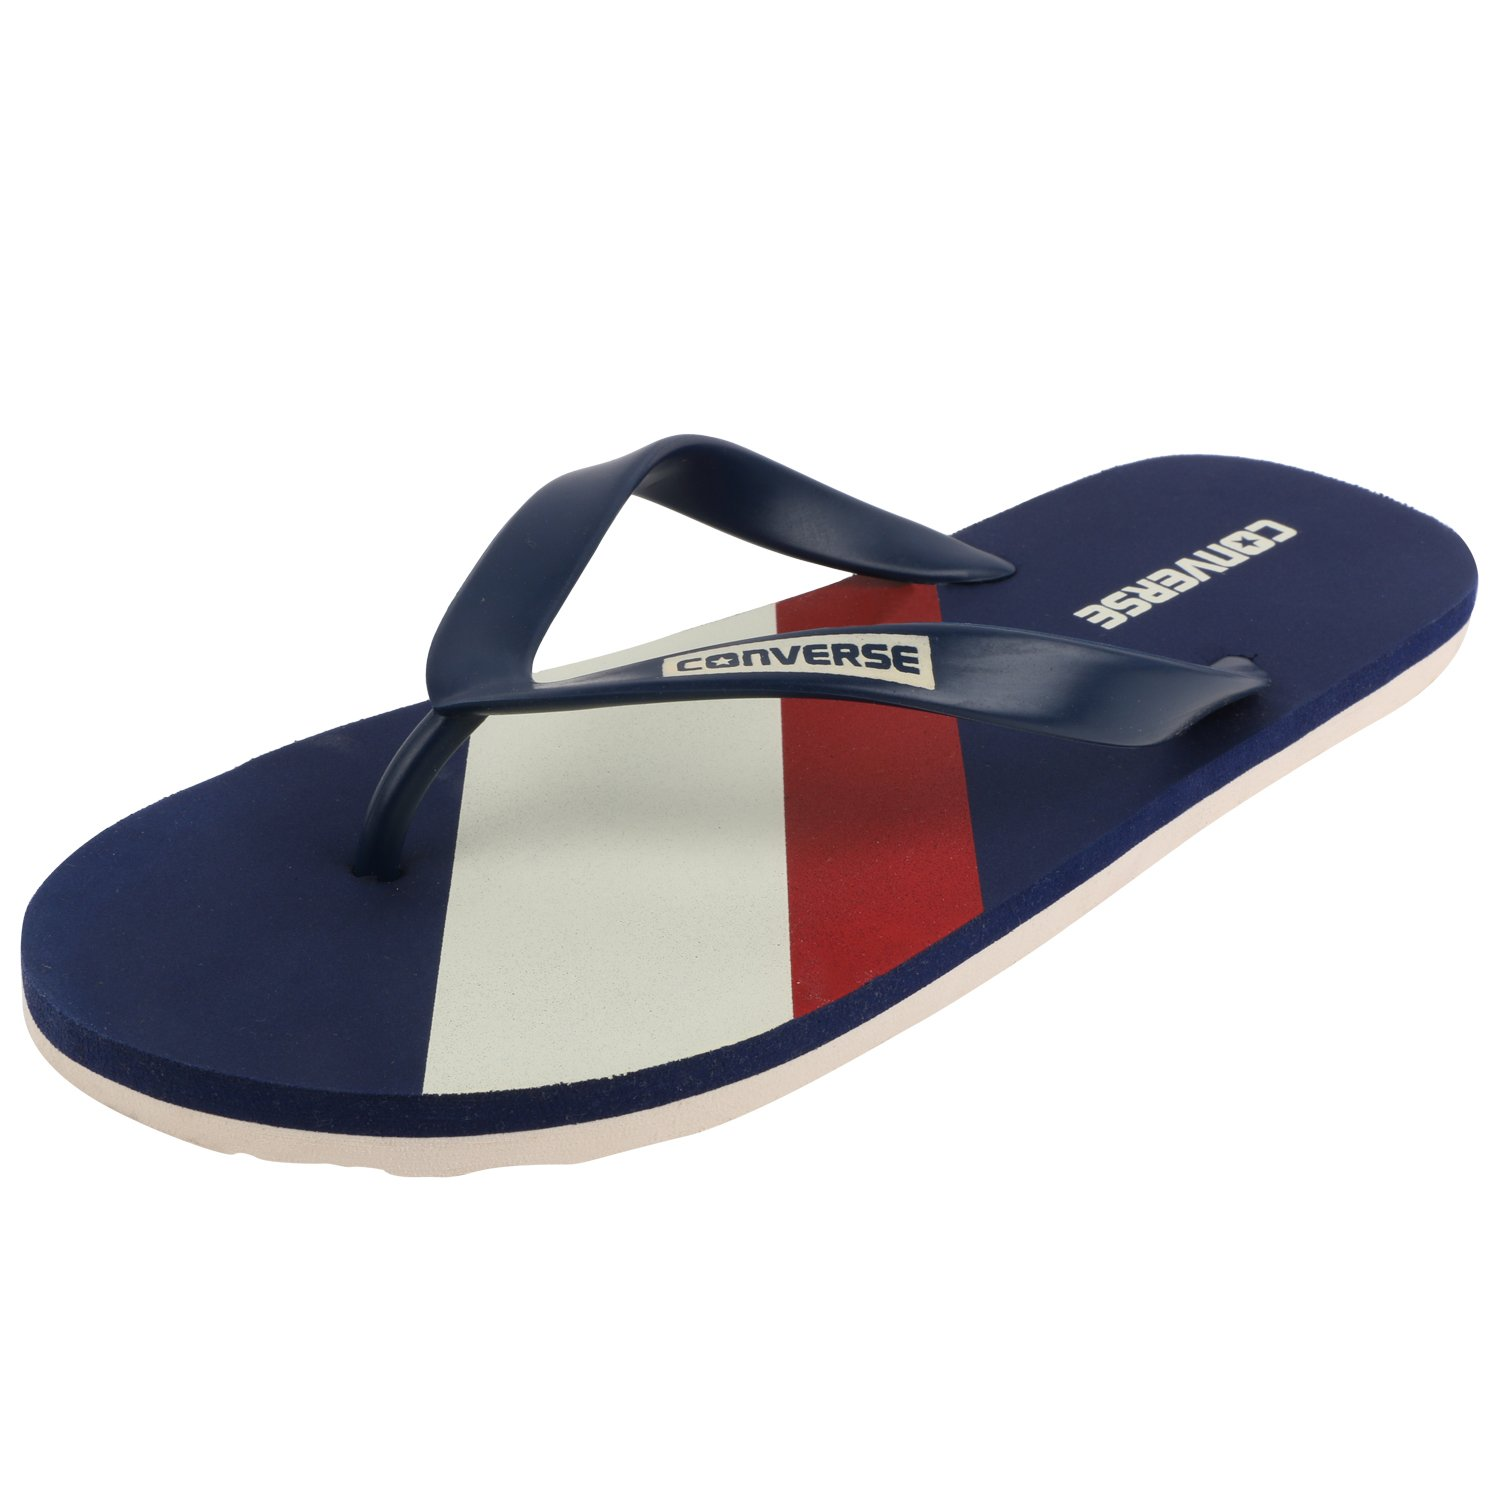 9a3057c494fa9 Converse Men s Navy Red White Flip-Flops and House Slippers - 6 UK India  (39 EU)  Buy Online at Low Prices in India - Amazon.in